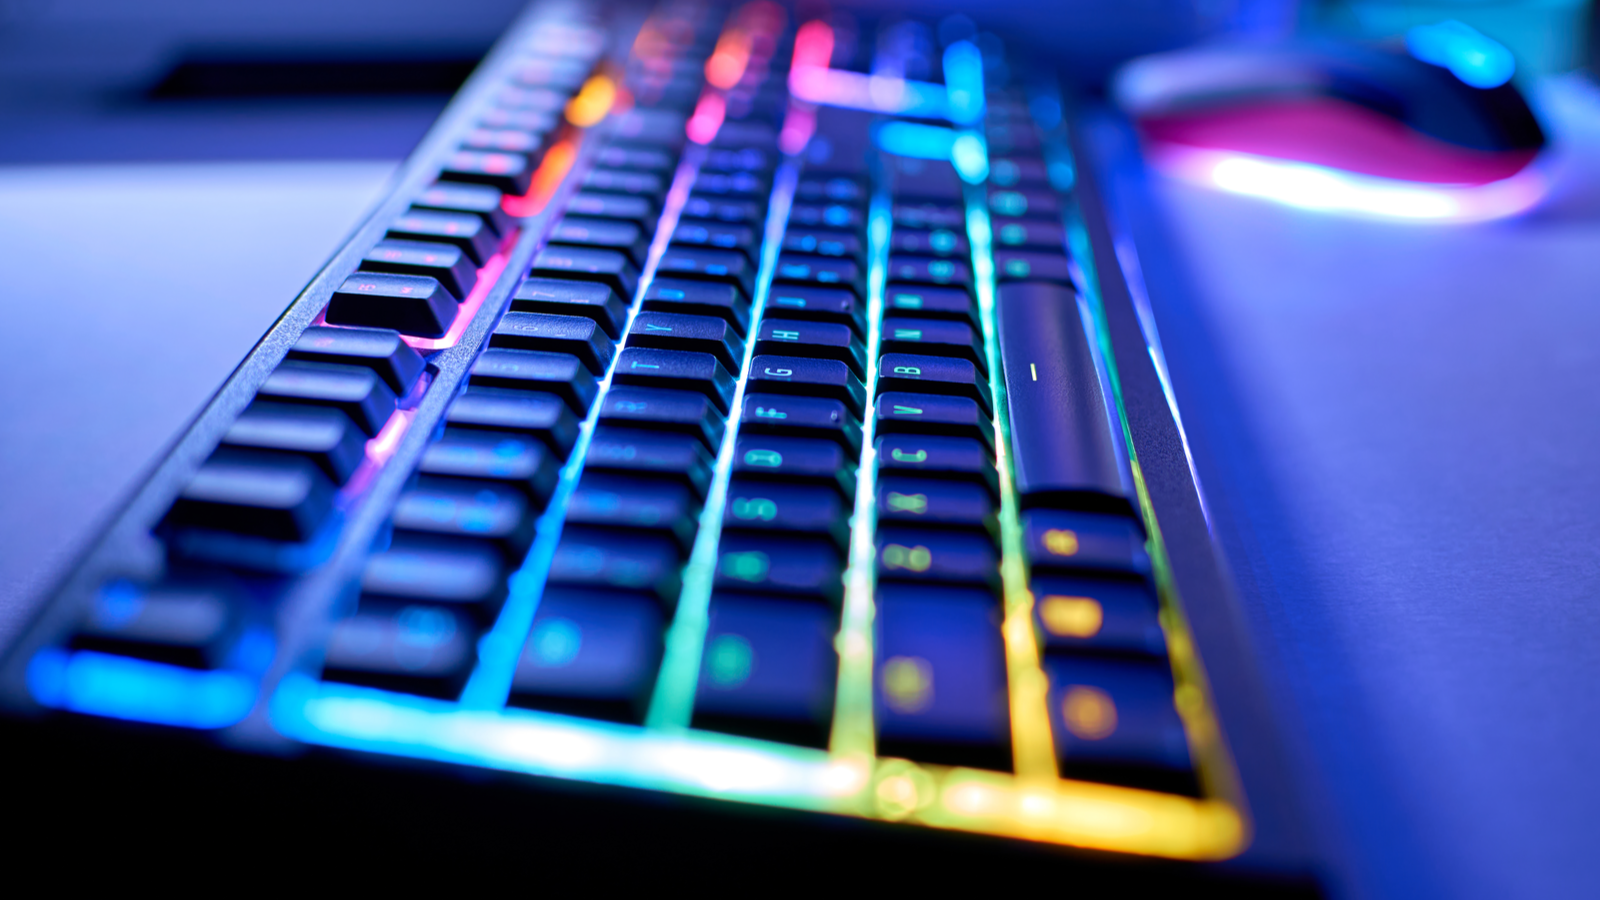 Gaming keyboard with RGB LED light, blurred background, selective focus, bokeh